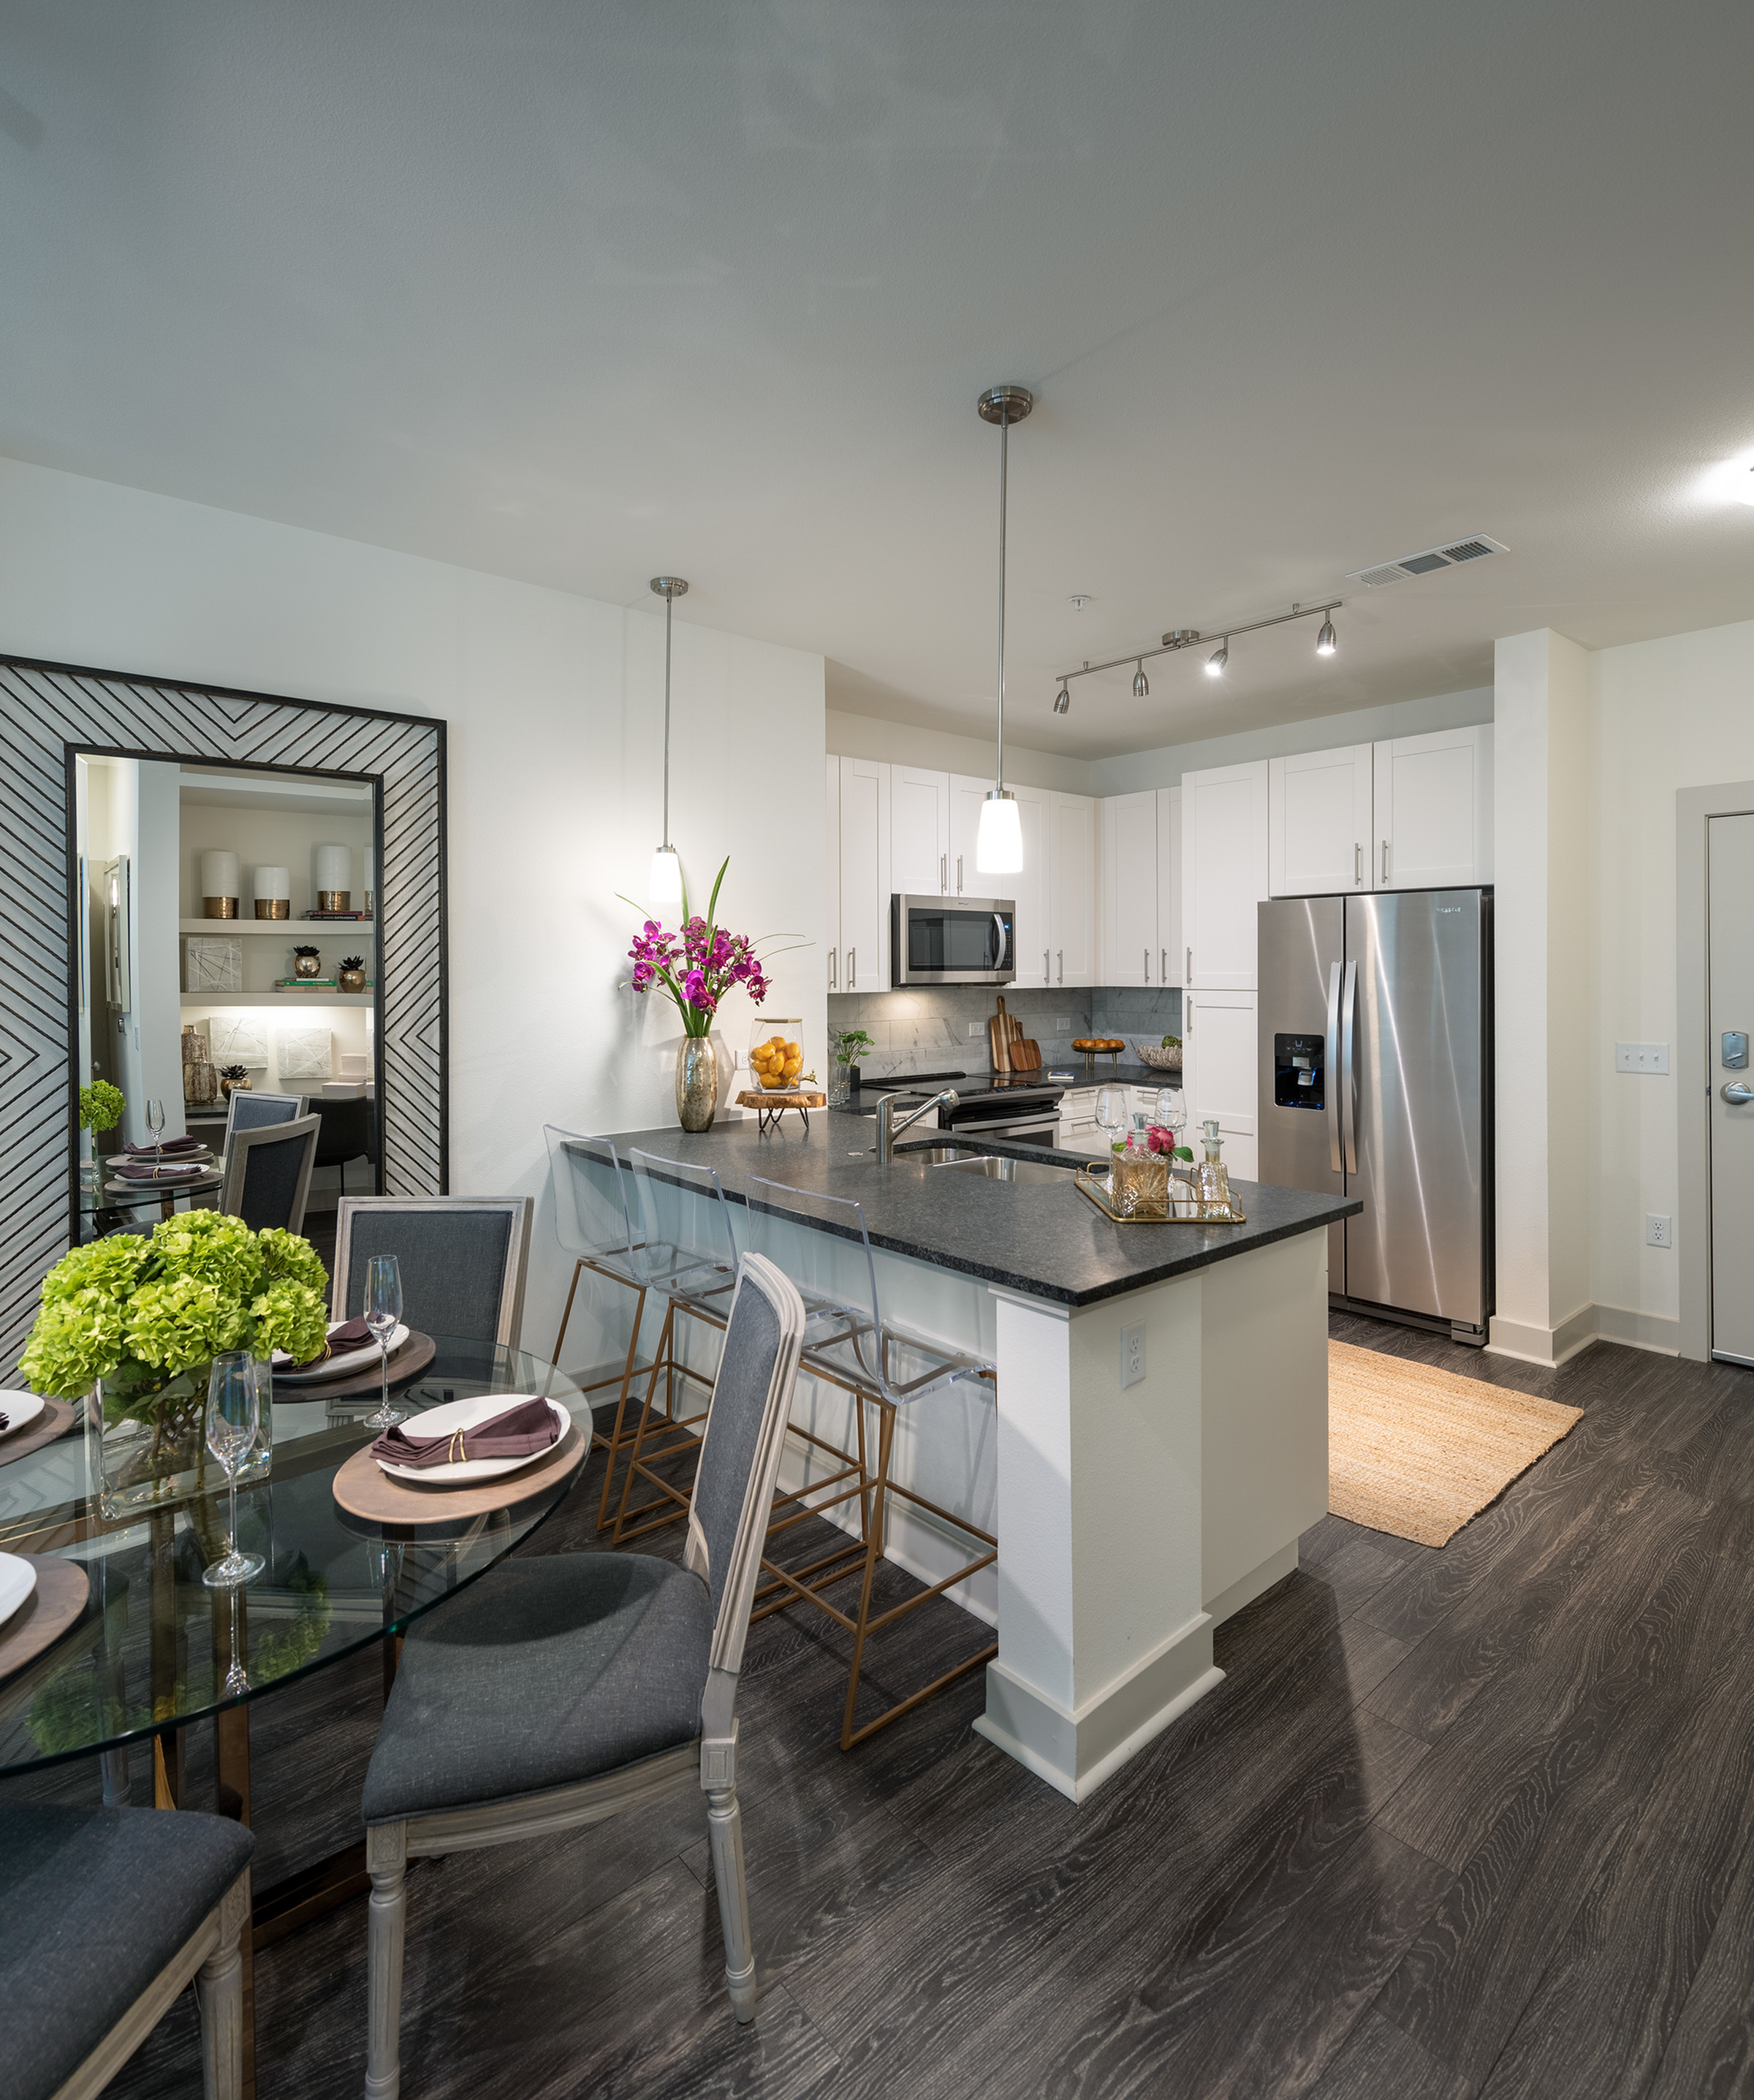 Image of Gourmet kitchens with stainless steel appliances for Hanover Platt Park